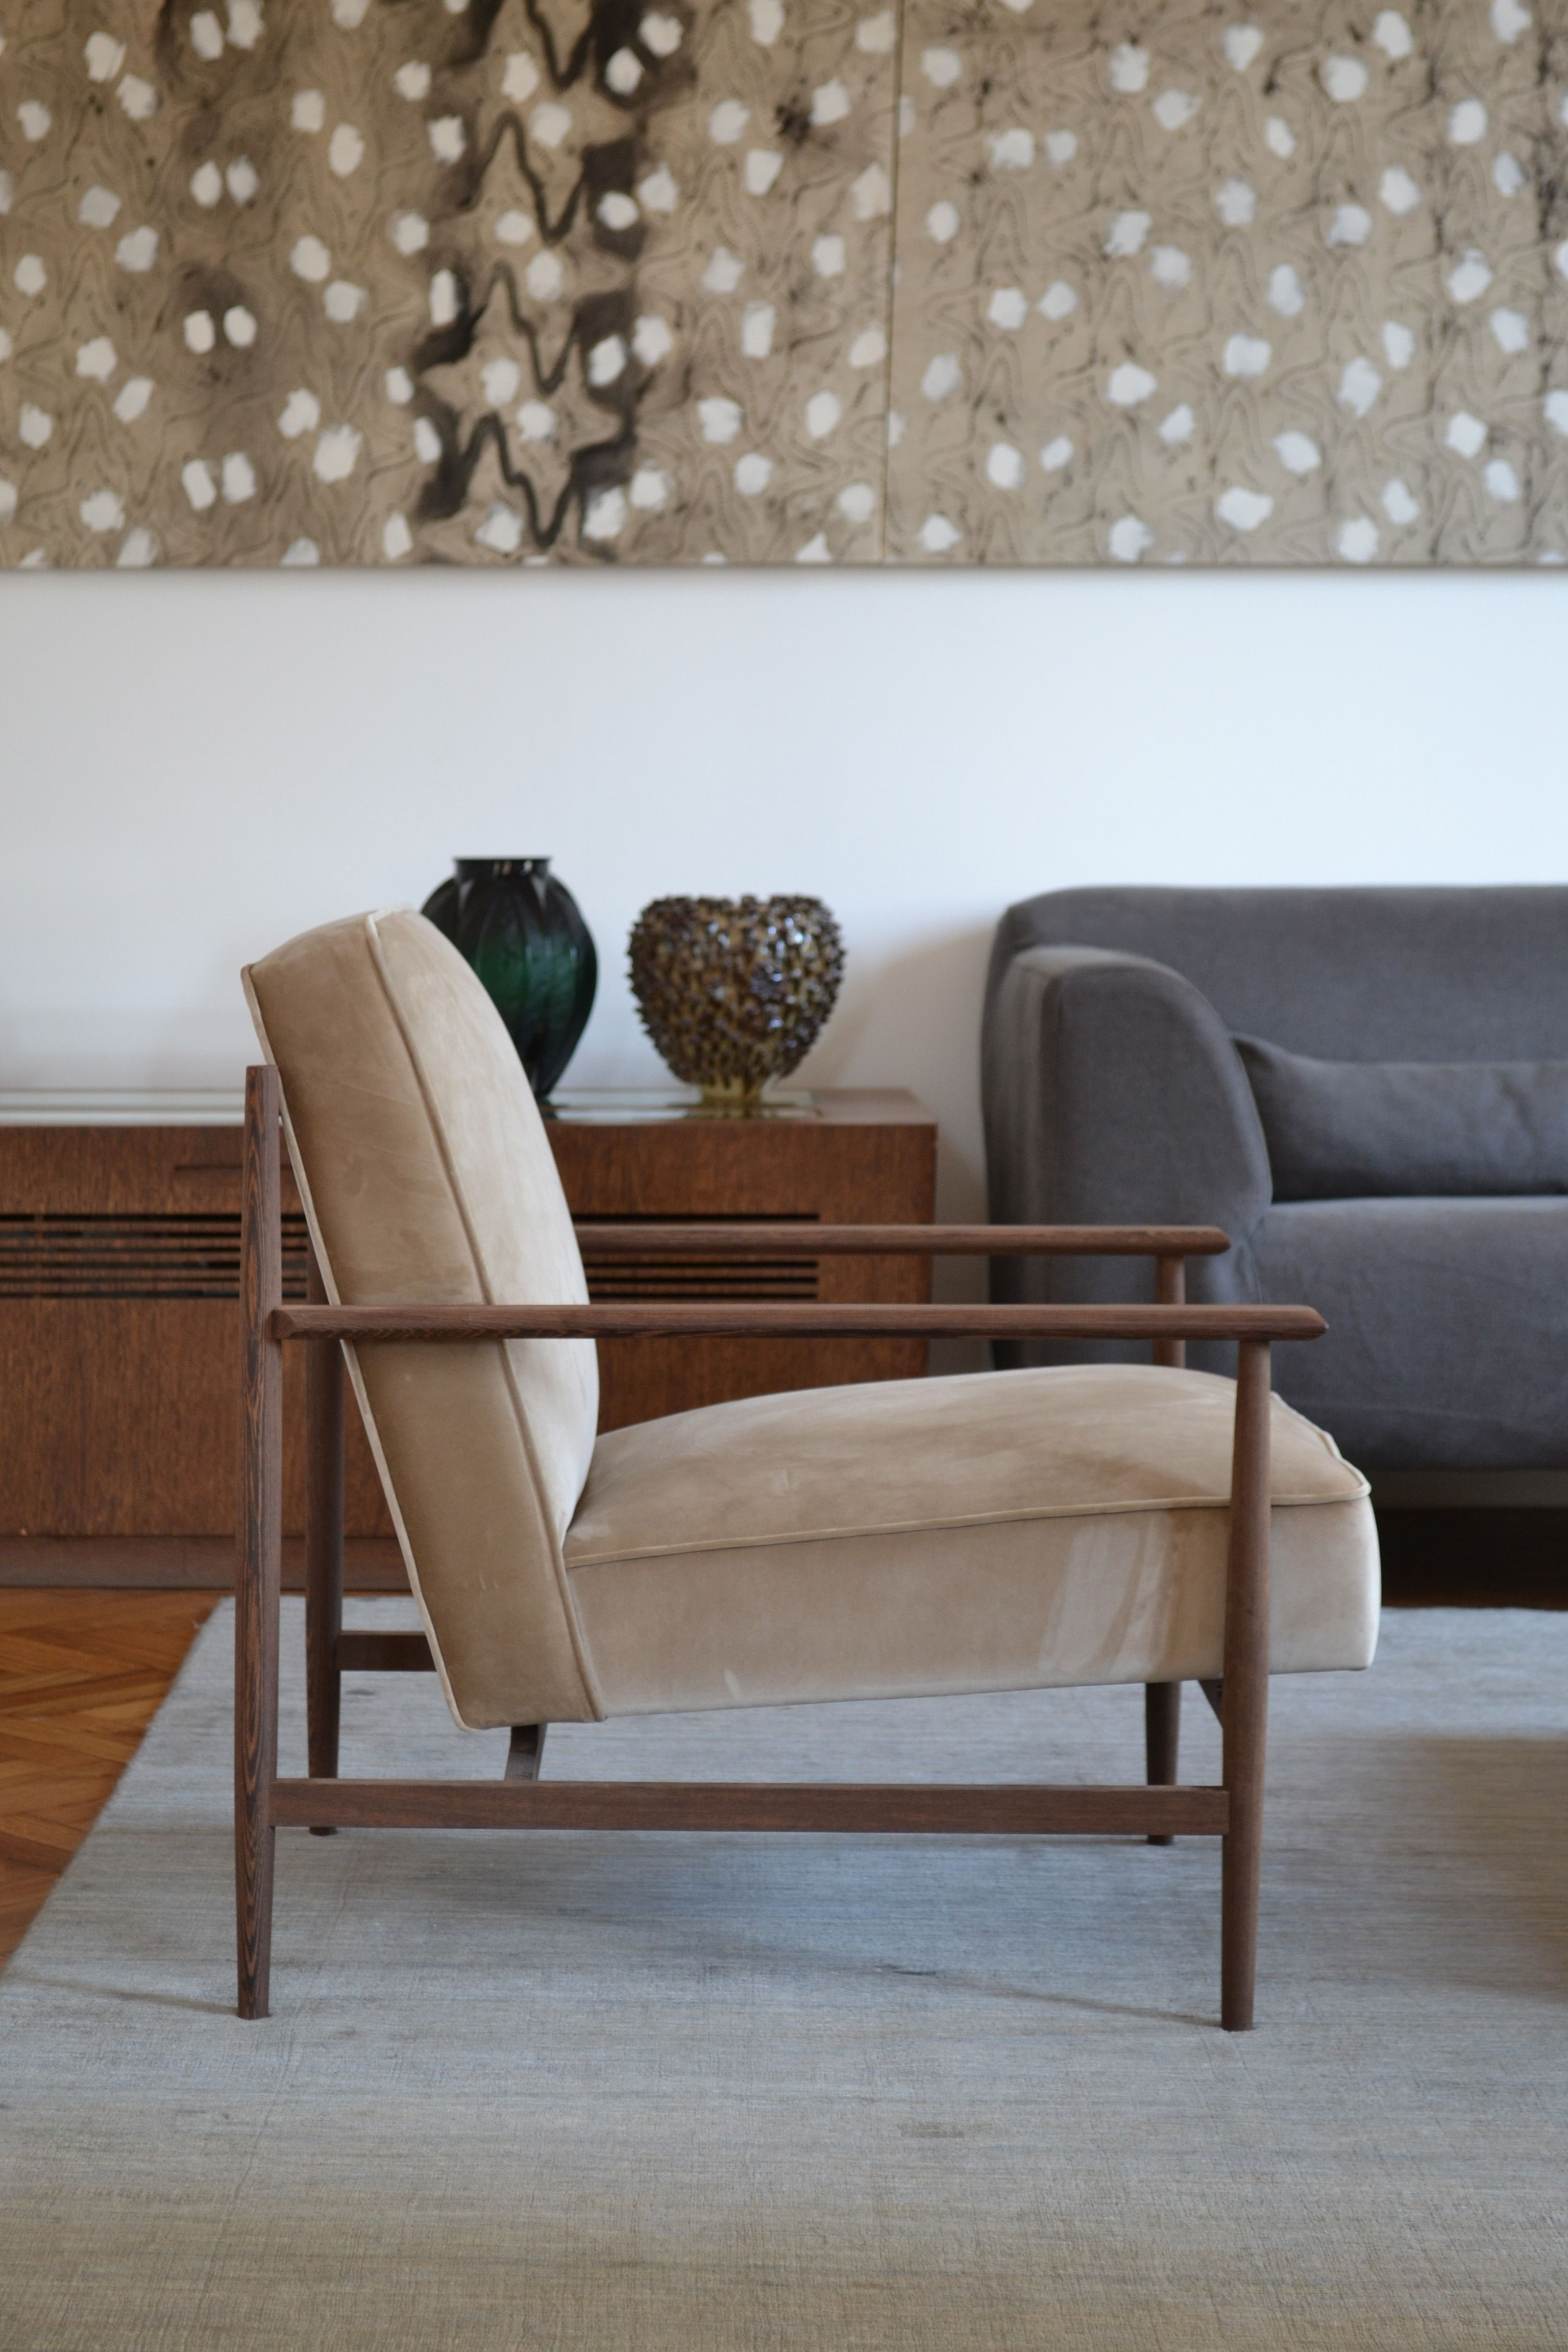 vintage arm chair grey bedroom uk poltrona gaia noce chairs pinterest armchair in wenge e velluto fuorisalone2017